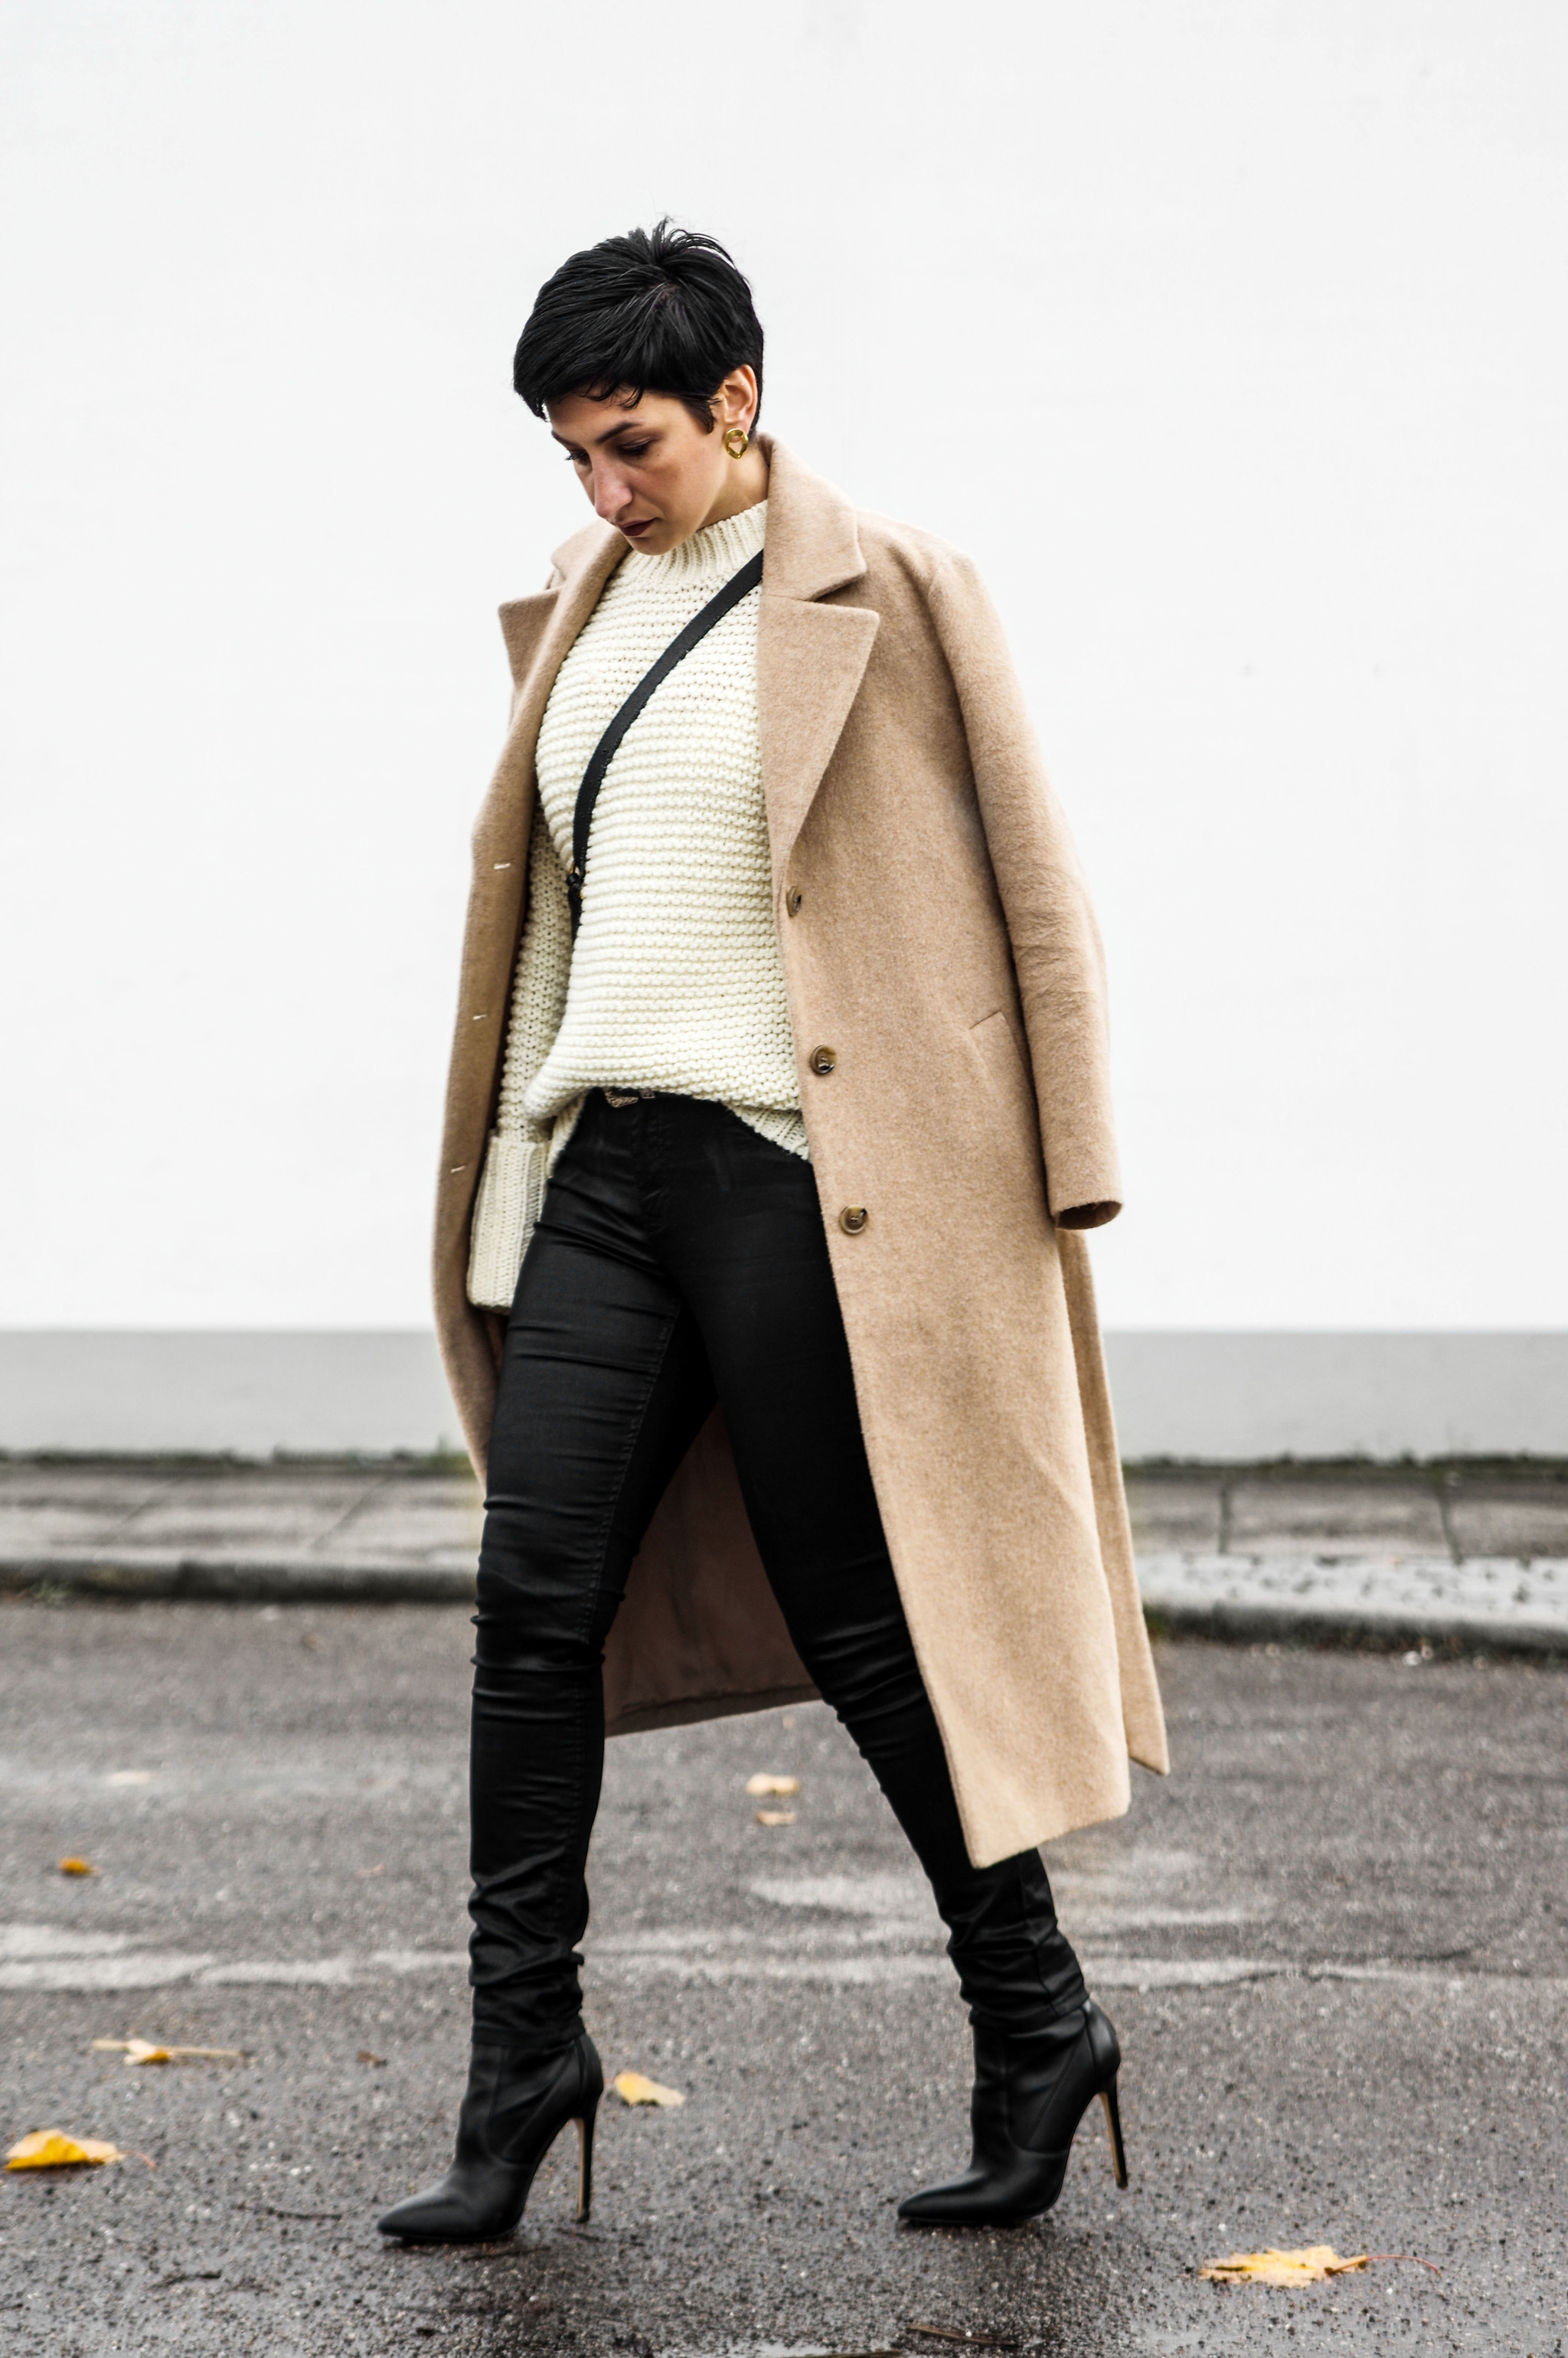 camel coat, high heel boots, winter outfit, women fashion, outfit for winter season, what to wear at work